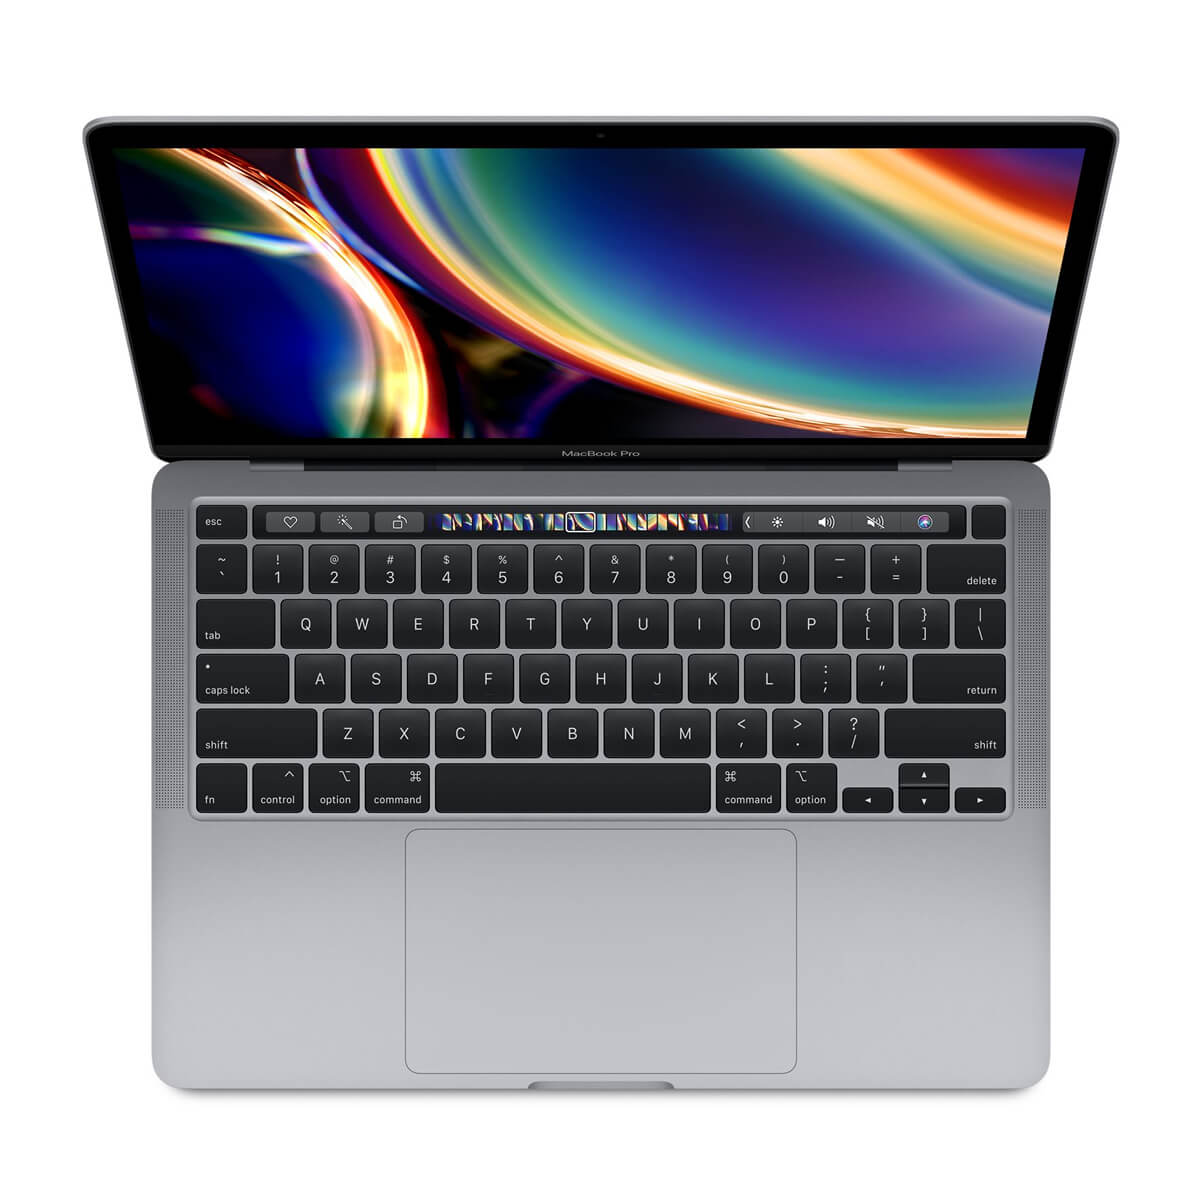 MacBook Pro 13-inch Space Gray 2.0GHz 1TB SSD TouchBar with Backlit Magic Keyboard